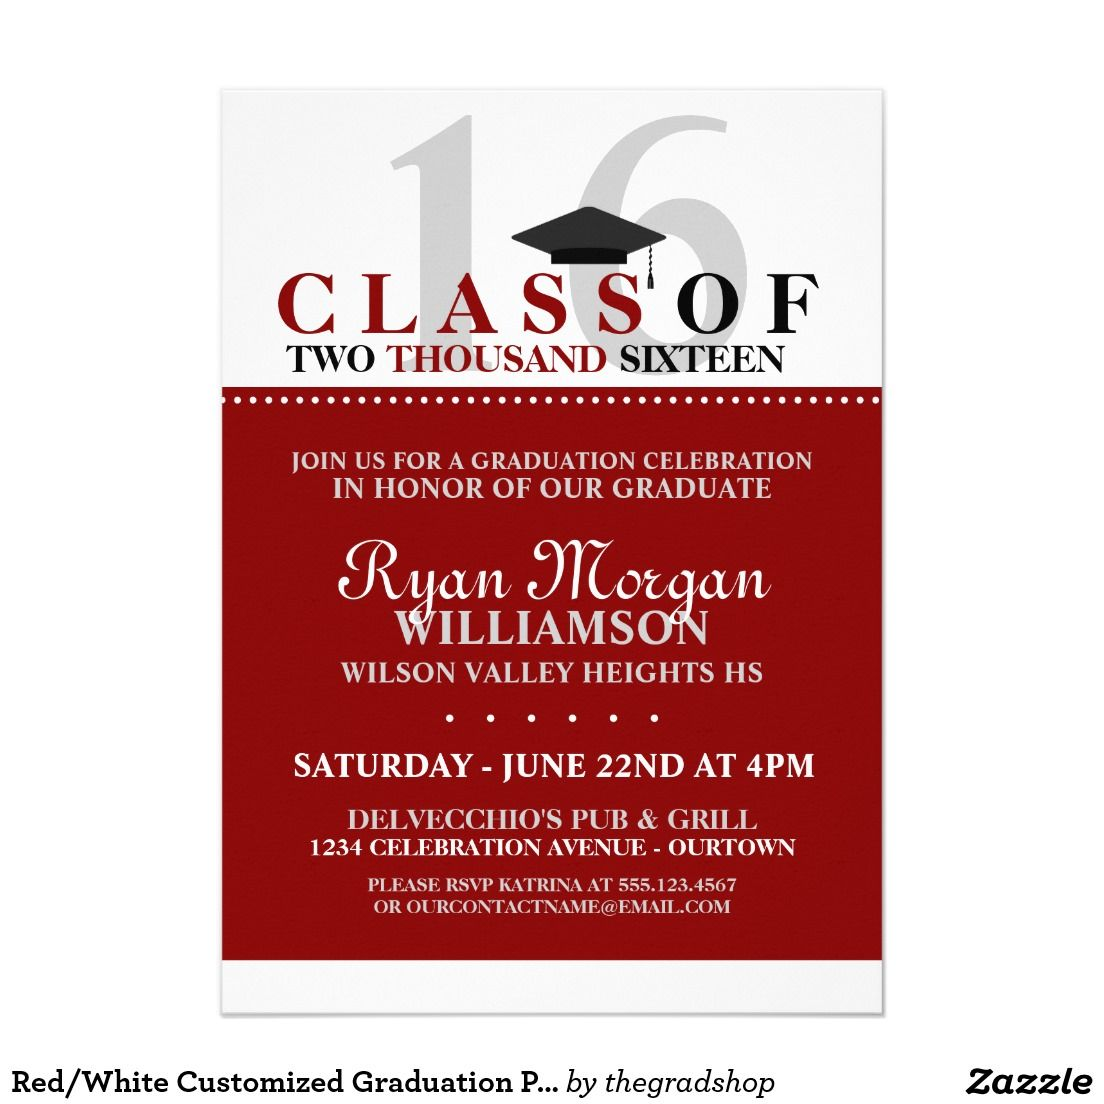 Redwhite customized graduation party invitation graduacion redwhite customized graduation party invitation filmwisefo